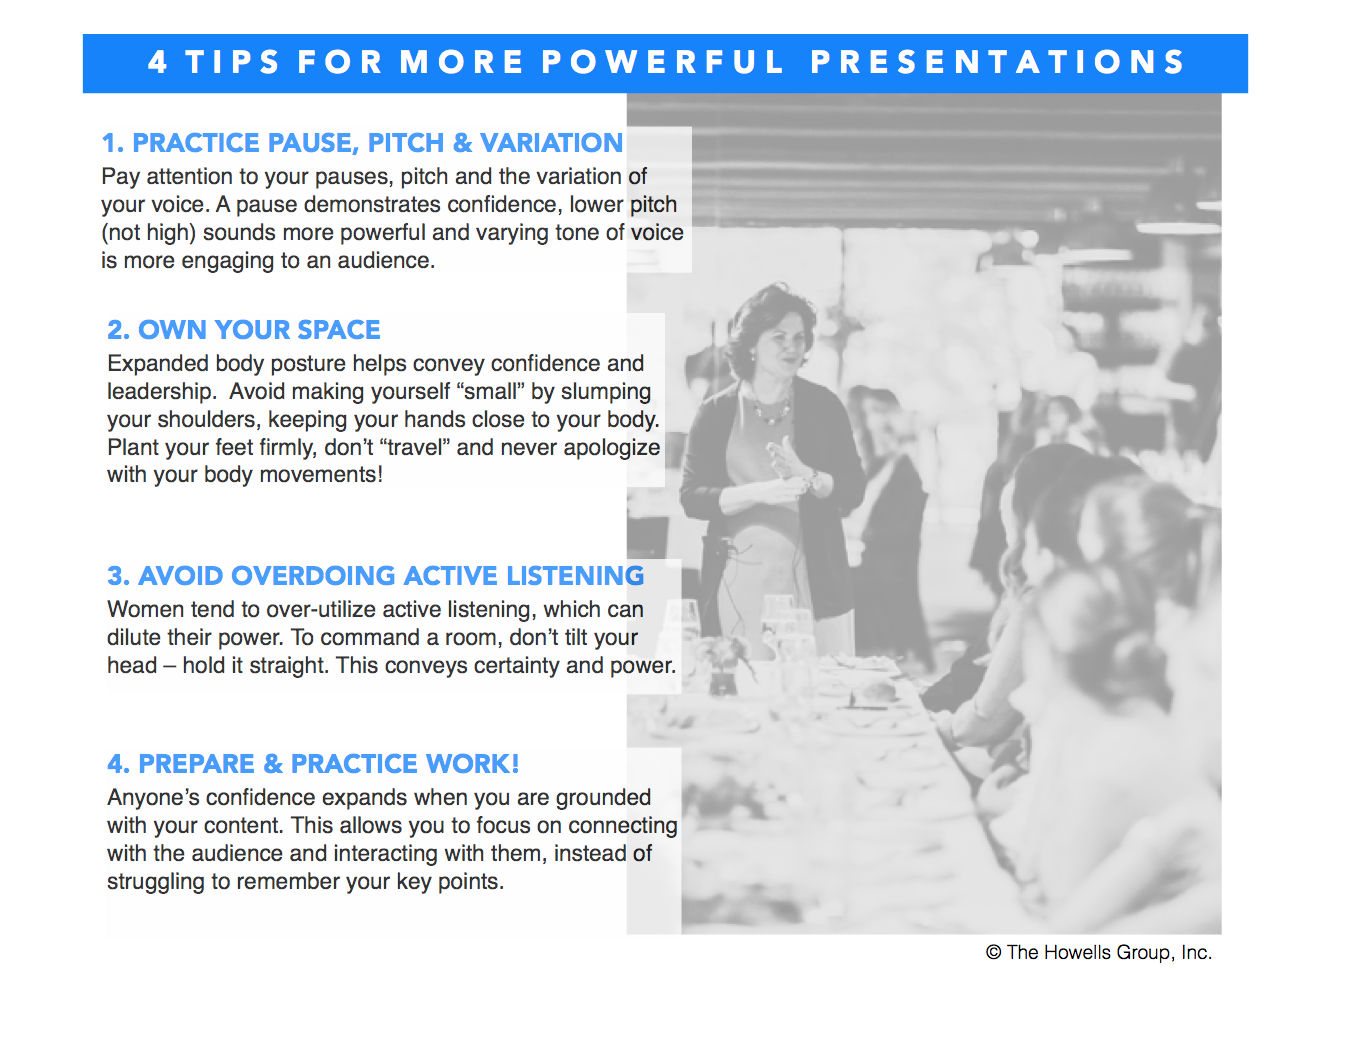 4 tips for powerful presentations